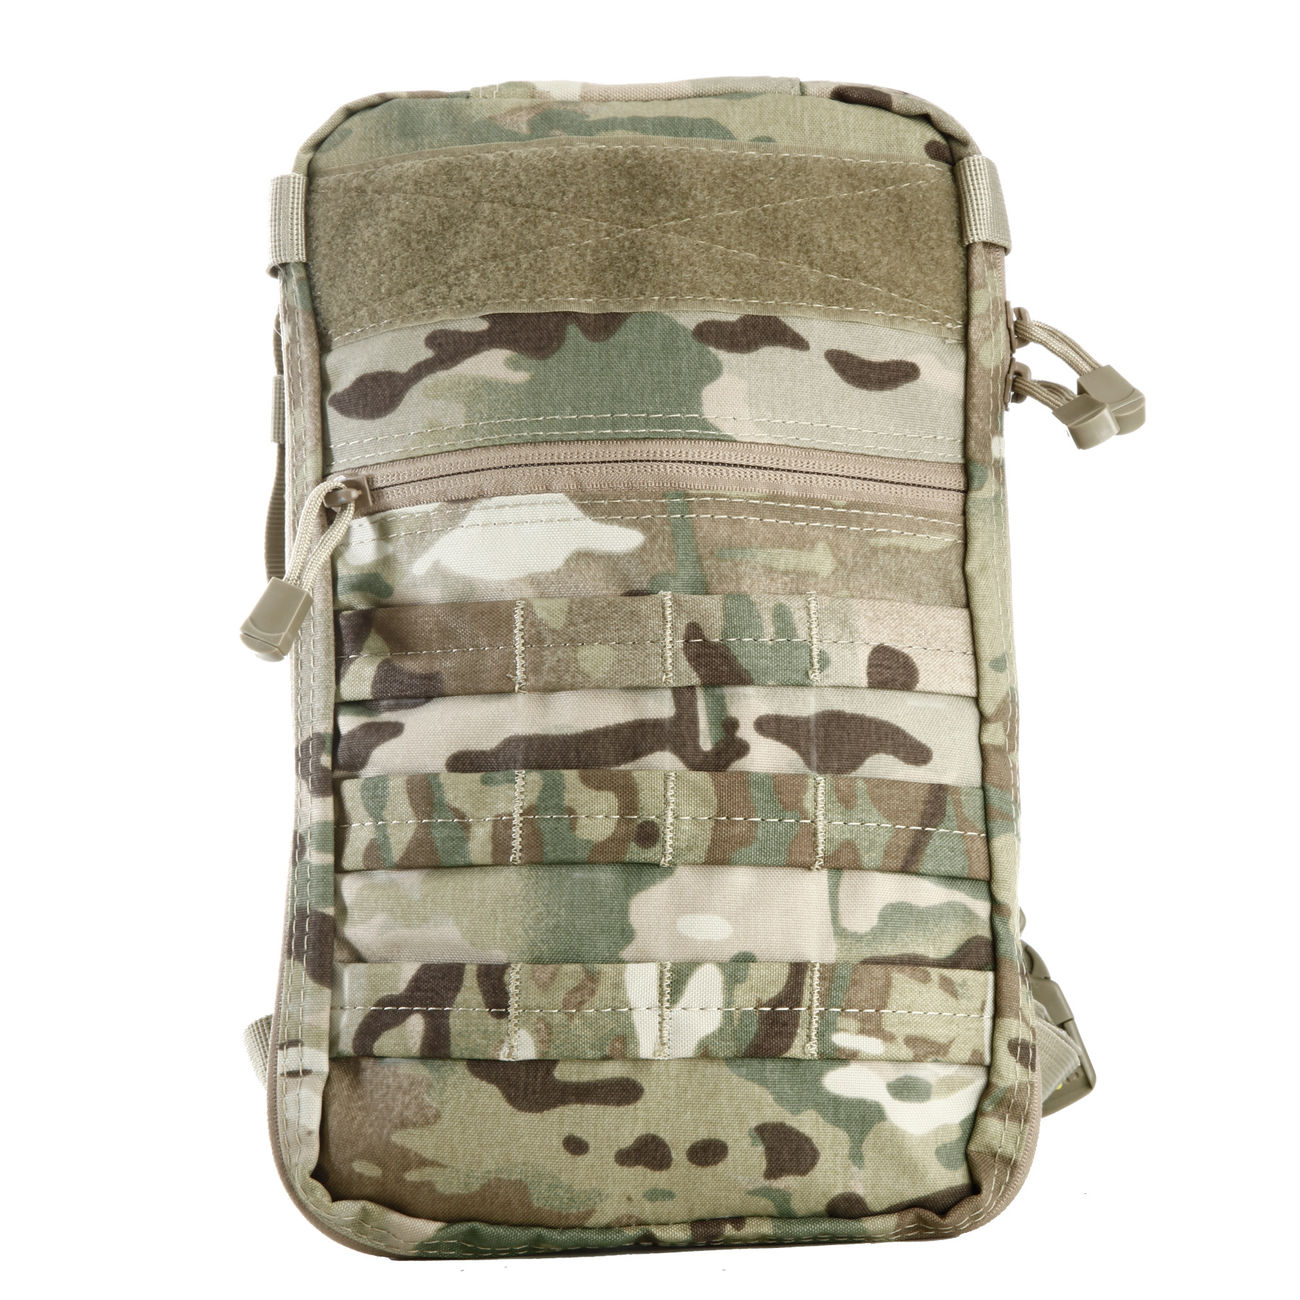 Condor Tidepool Hydration Carrier Multicam 0